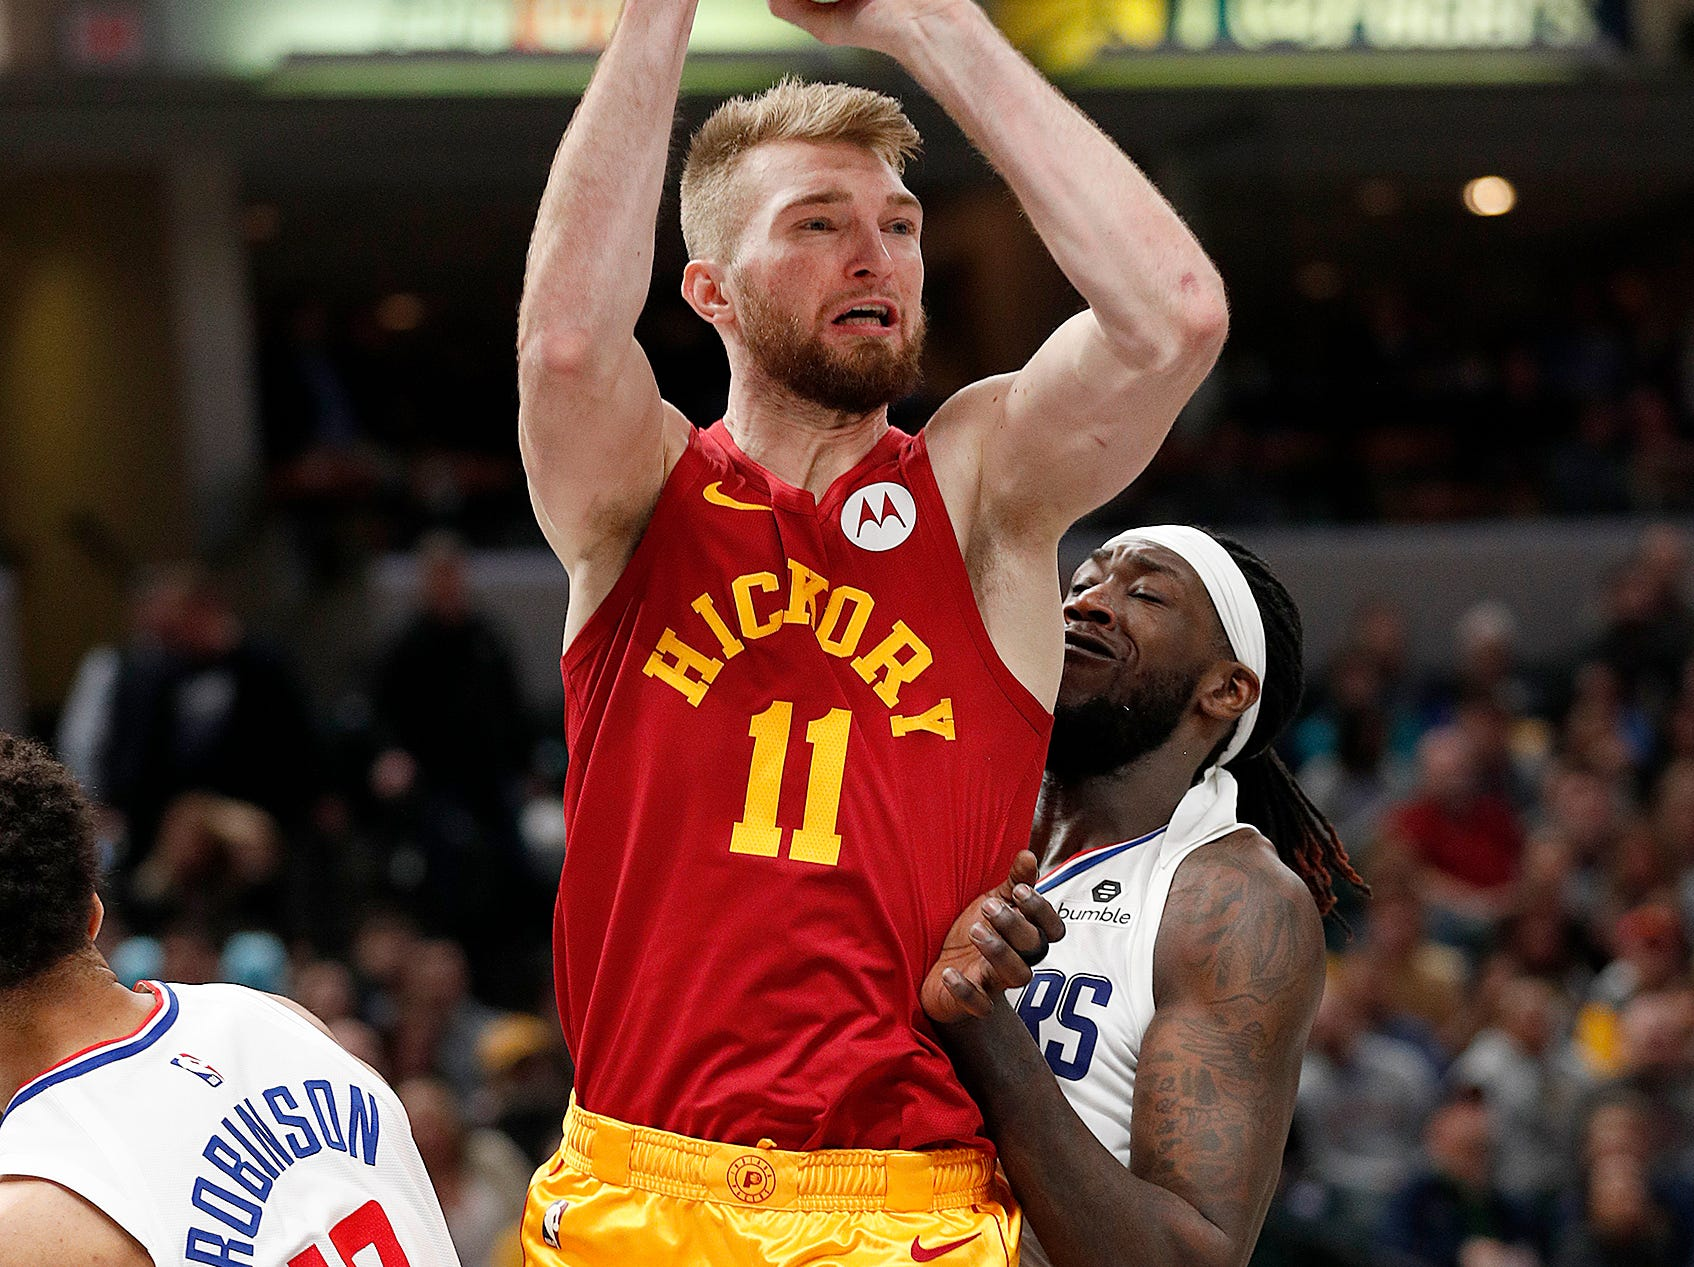 Indiana Pacers forward Domantas Sabonis (11) passes the ball by LA Clippers forward Montrezl Harrell (5) in the second half of their game at Bankers Life Fieldhouse on Thursday, Feb. 7, 2019.